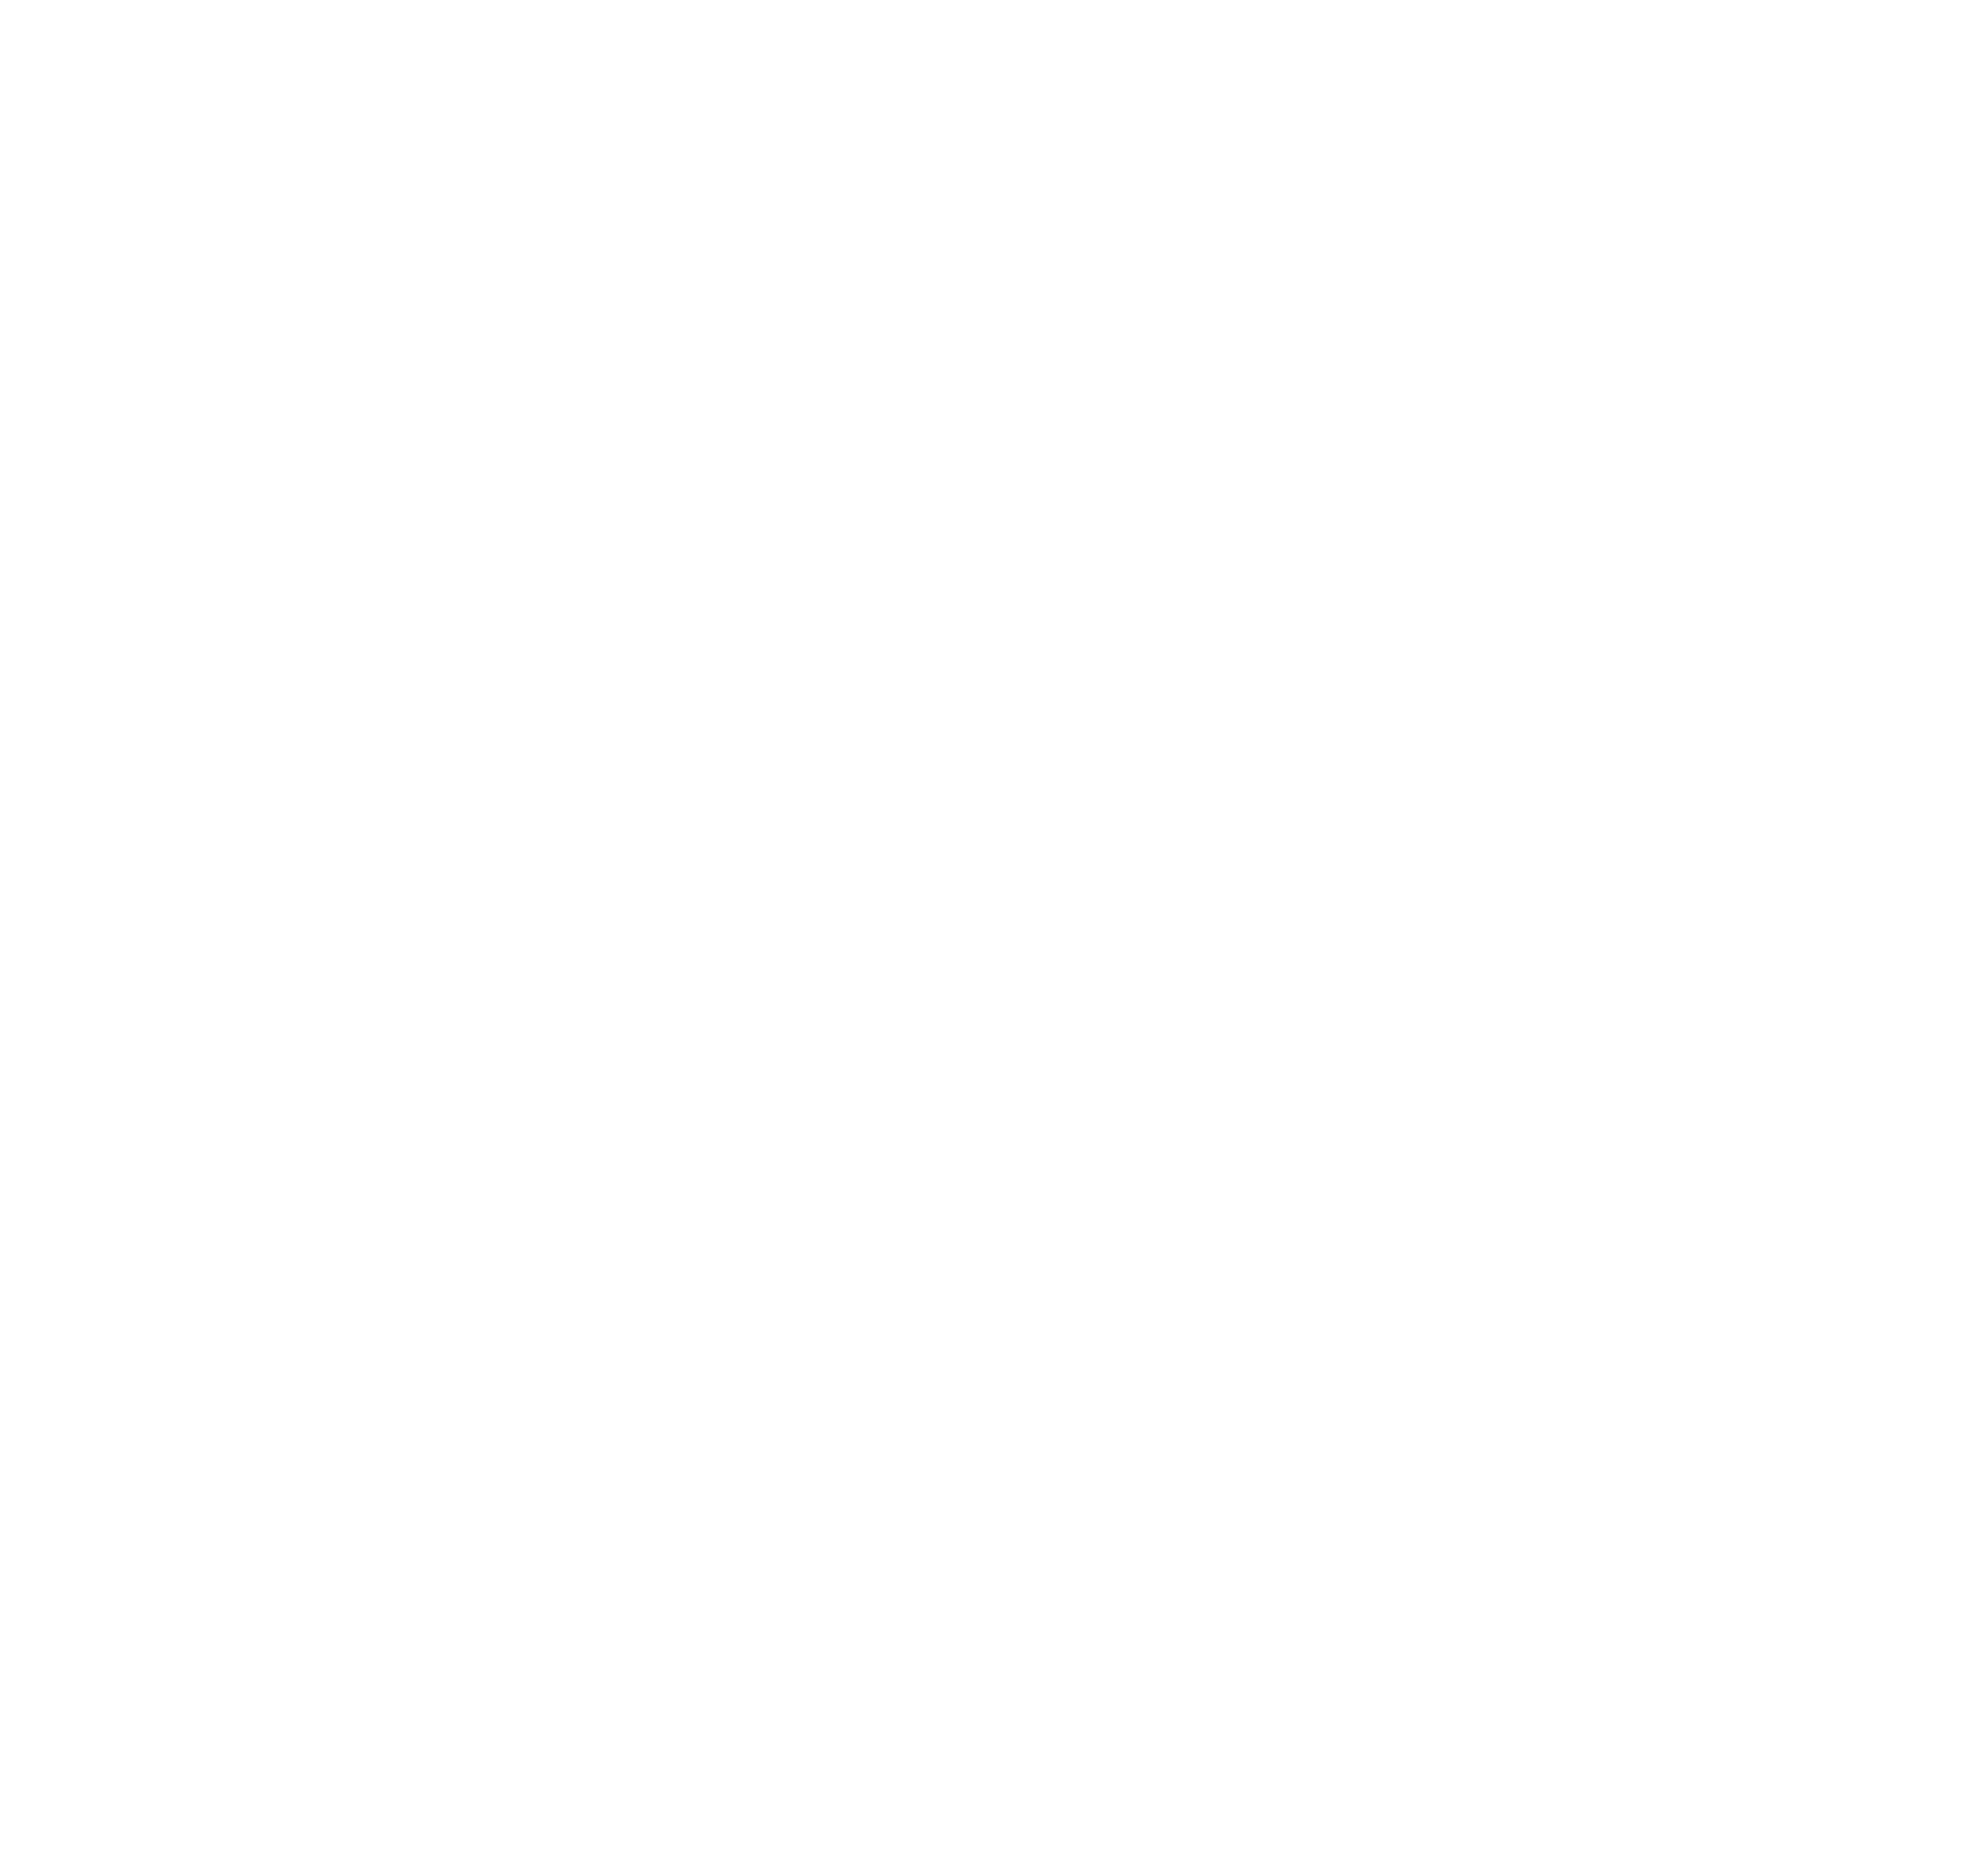 BGuests - Food & Travel Blog